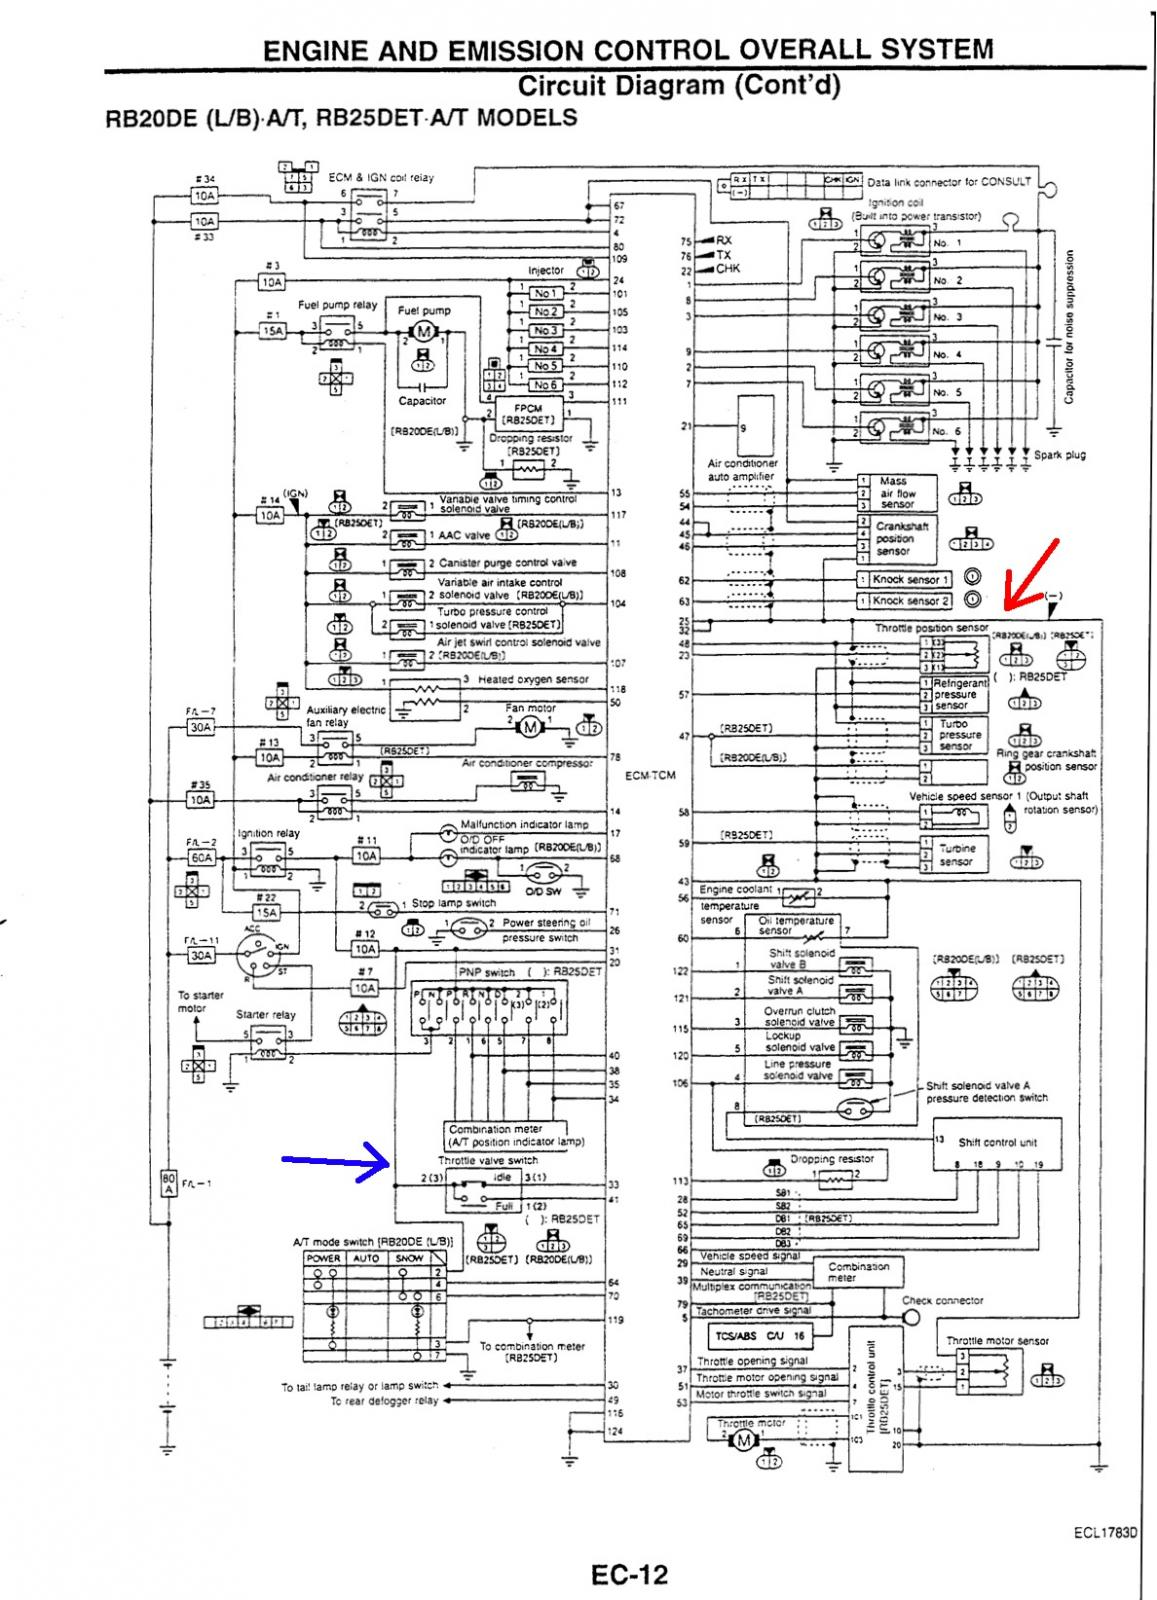 hight resolution of rb20 wiring diagram share circuit diagrams r32 rb20det wiring diagram wiring diagram forward rb20 maf wiring